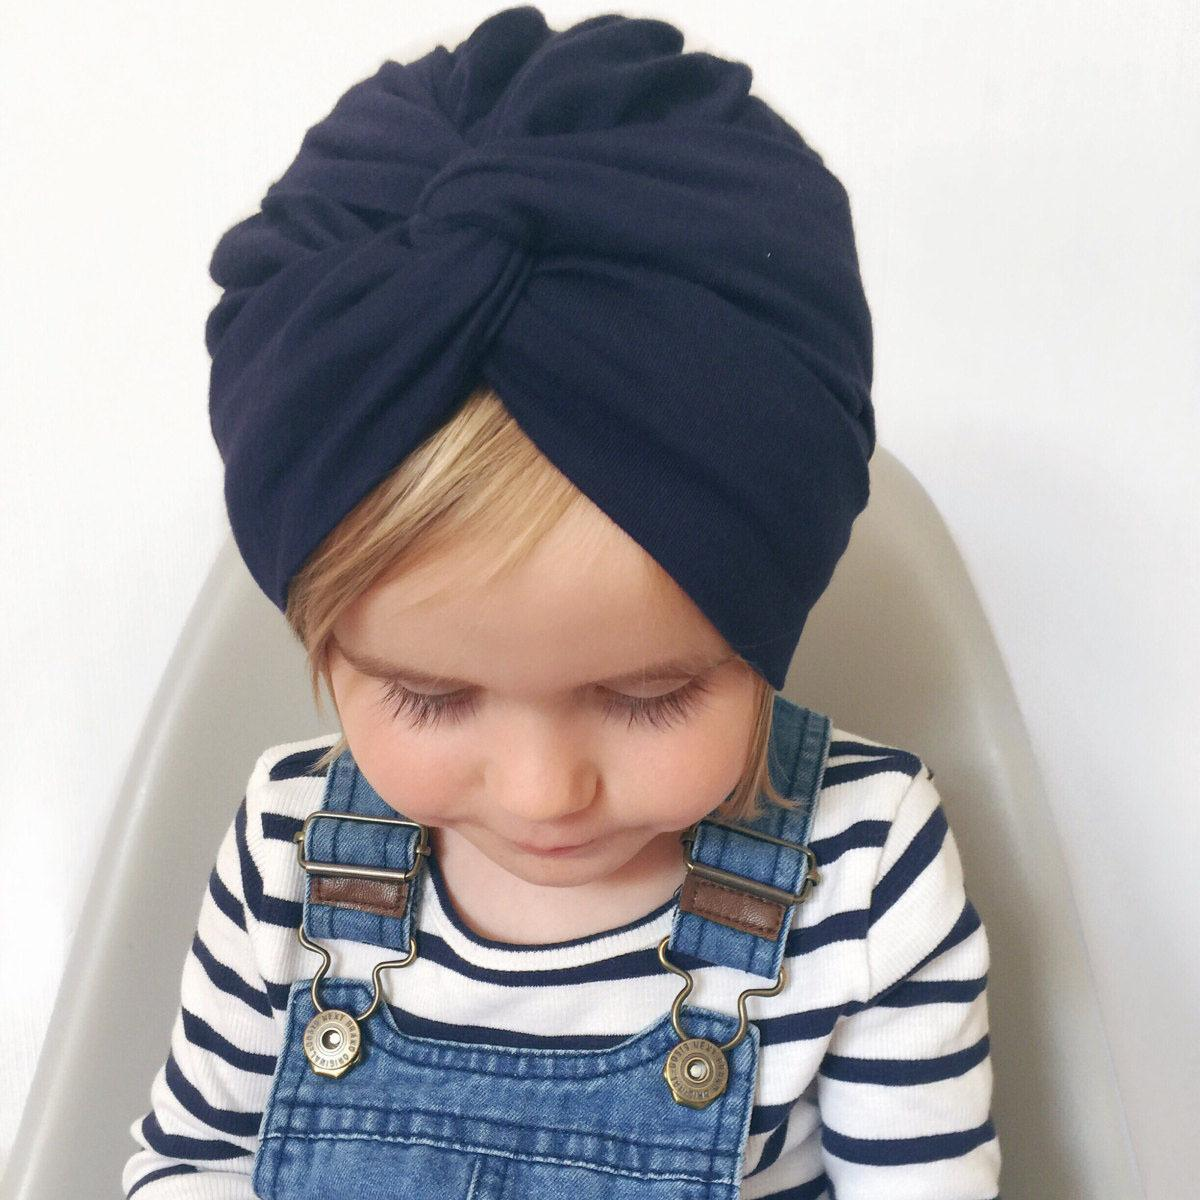 50c8c0d74e5c9 newborn cross hat baby Turban Knot Beanie children s cap solid color  pullover hats Toddler photography props Cap AAA1810